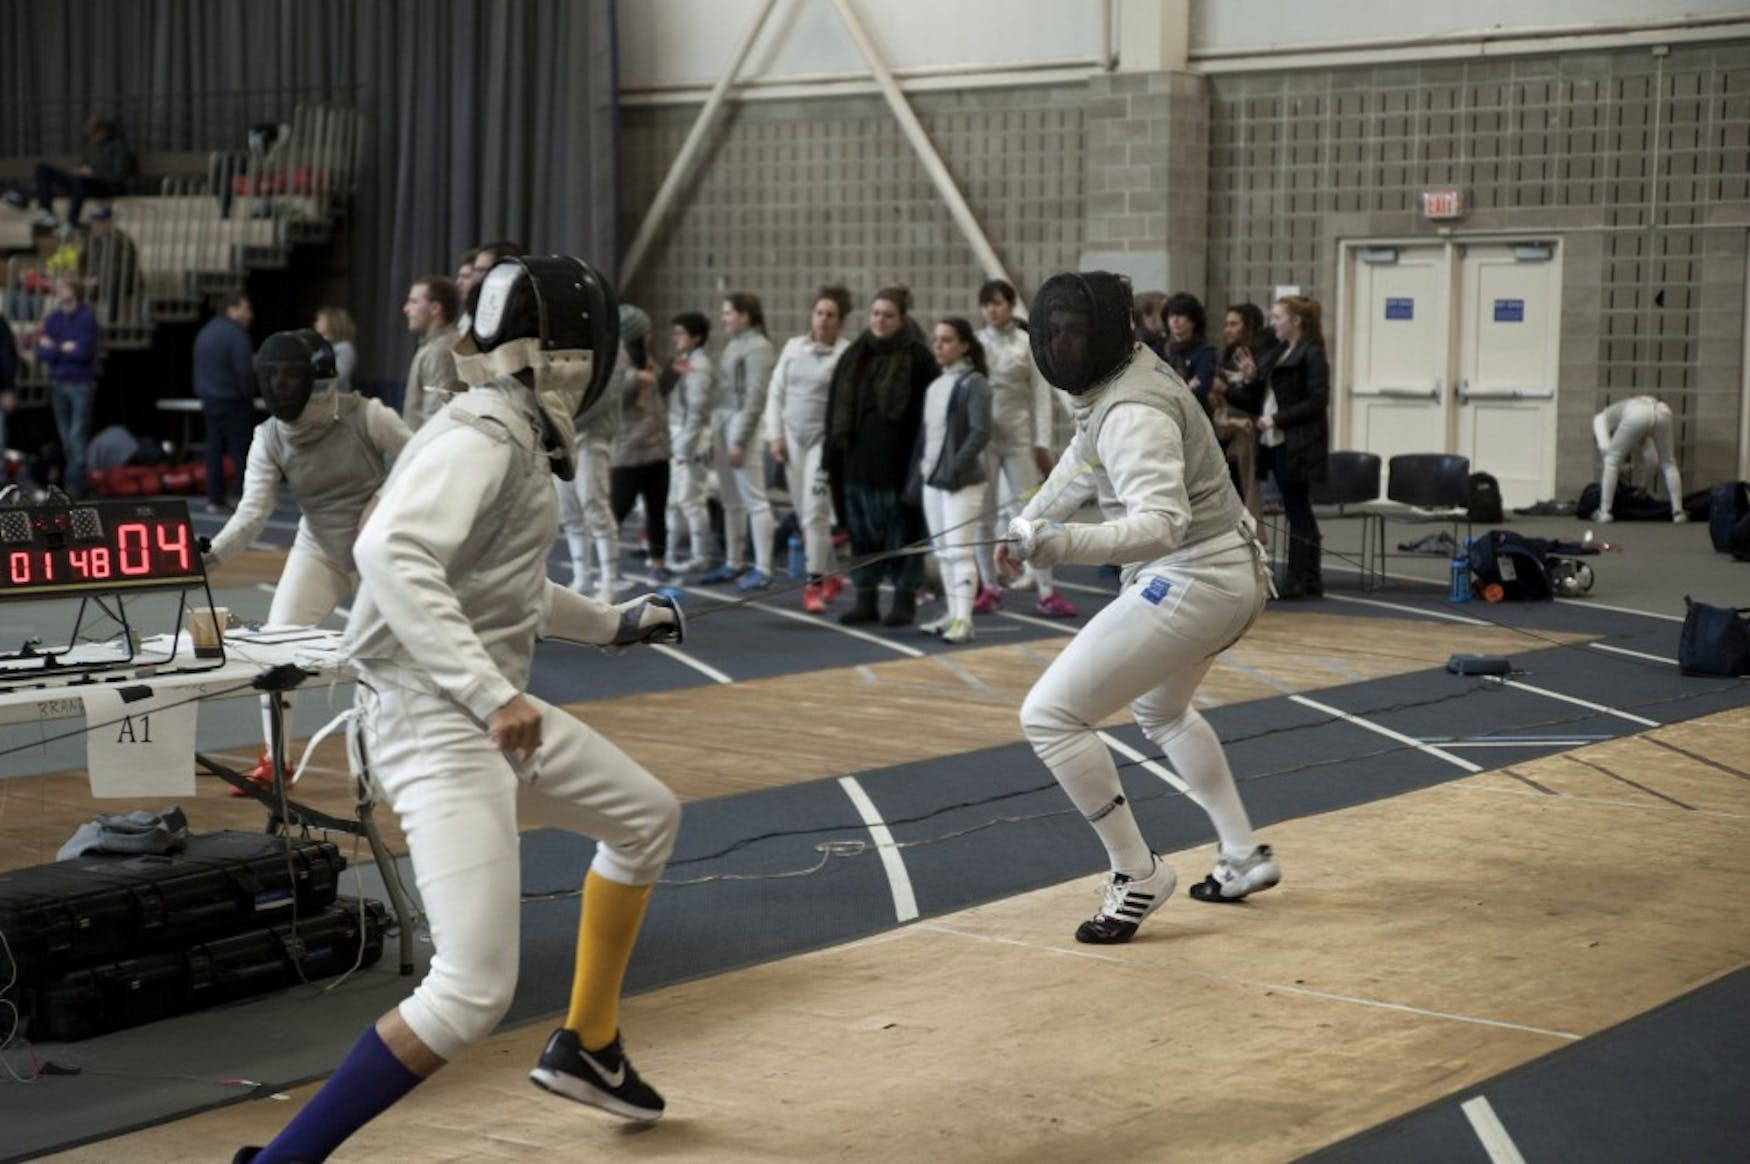 fencing-sollee-invitational-hs-2-3-18-0003-edit